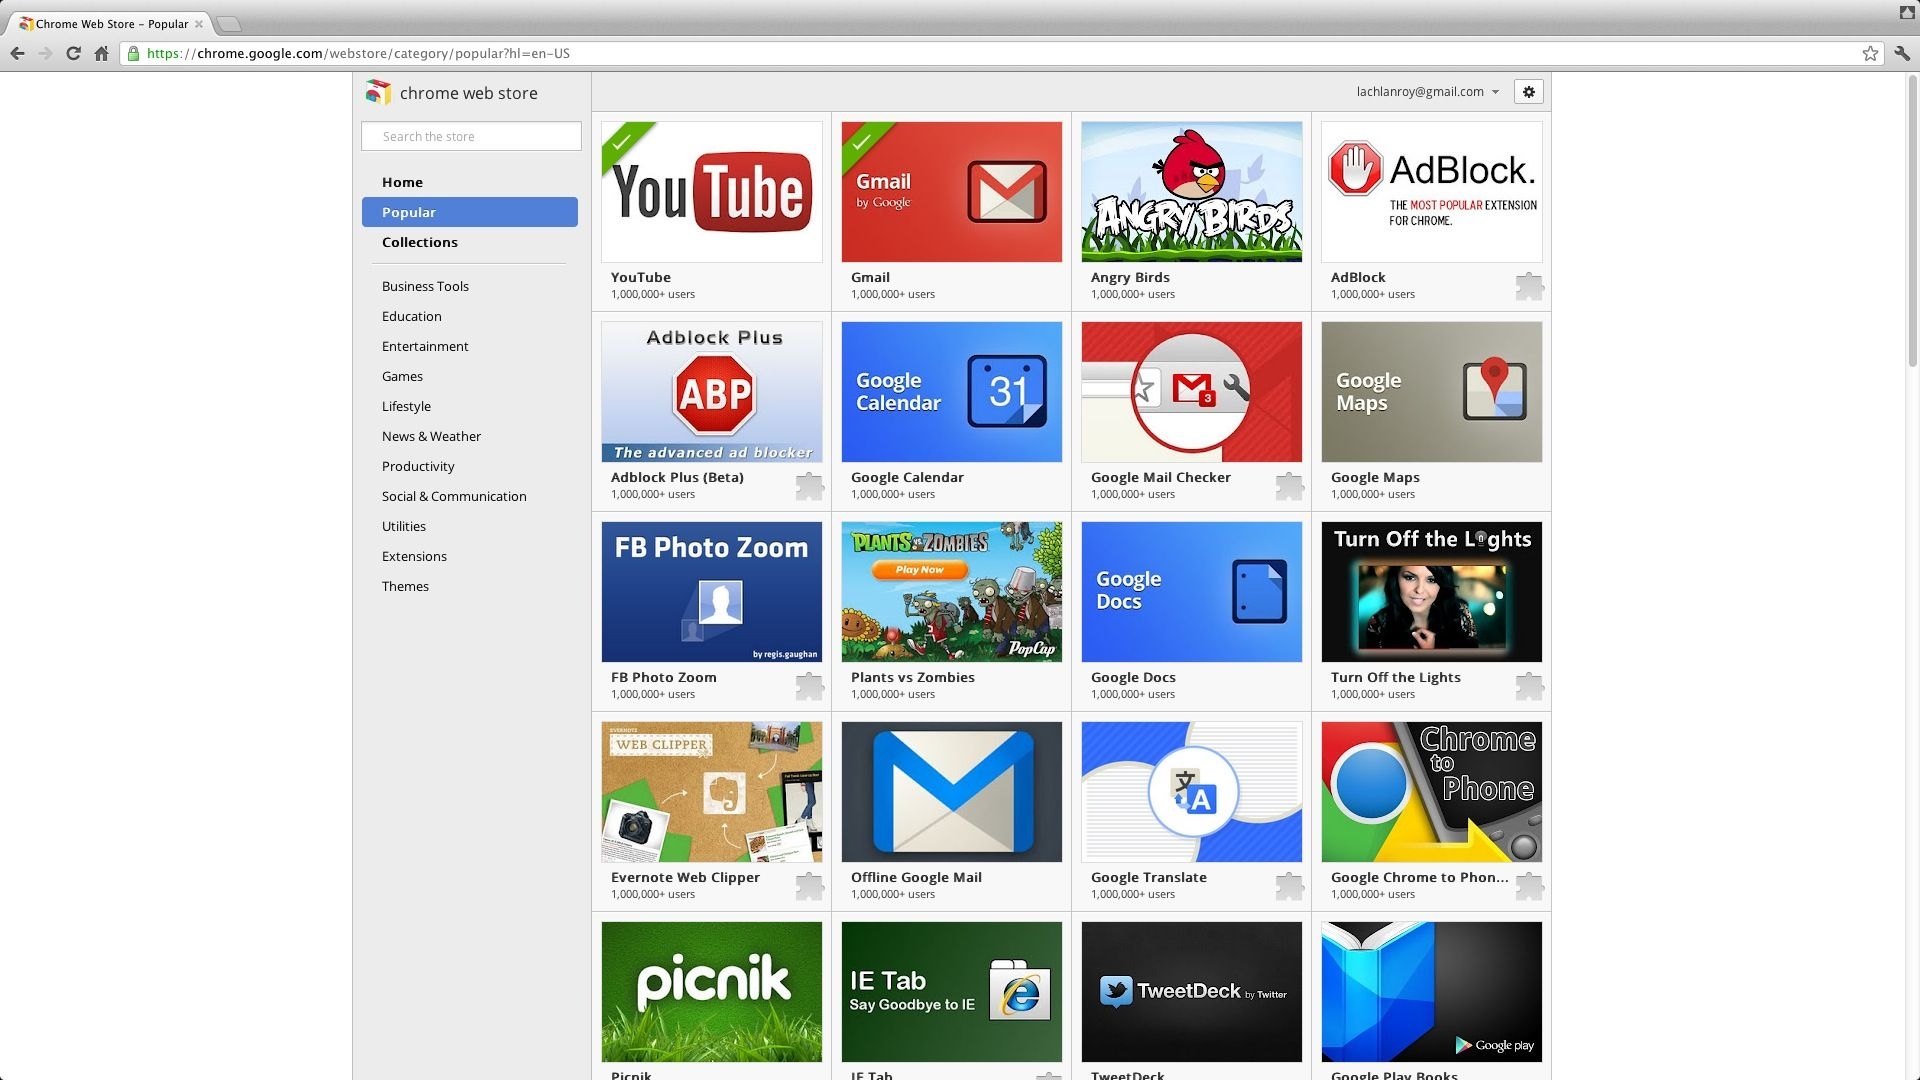 The Easy Guide to Google Chrome Chrome web, Chrome apps